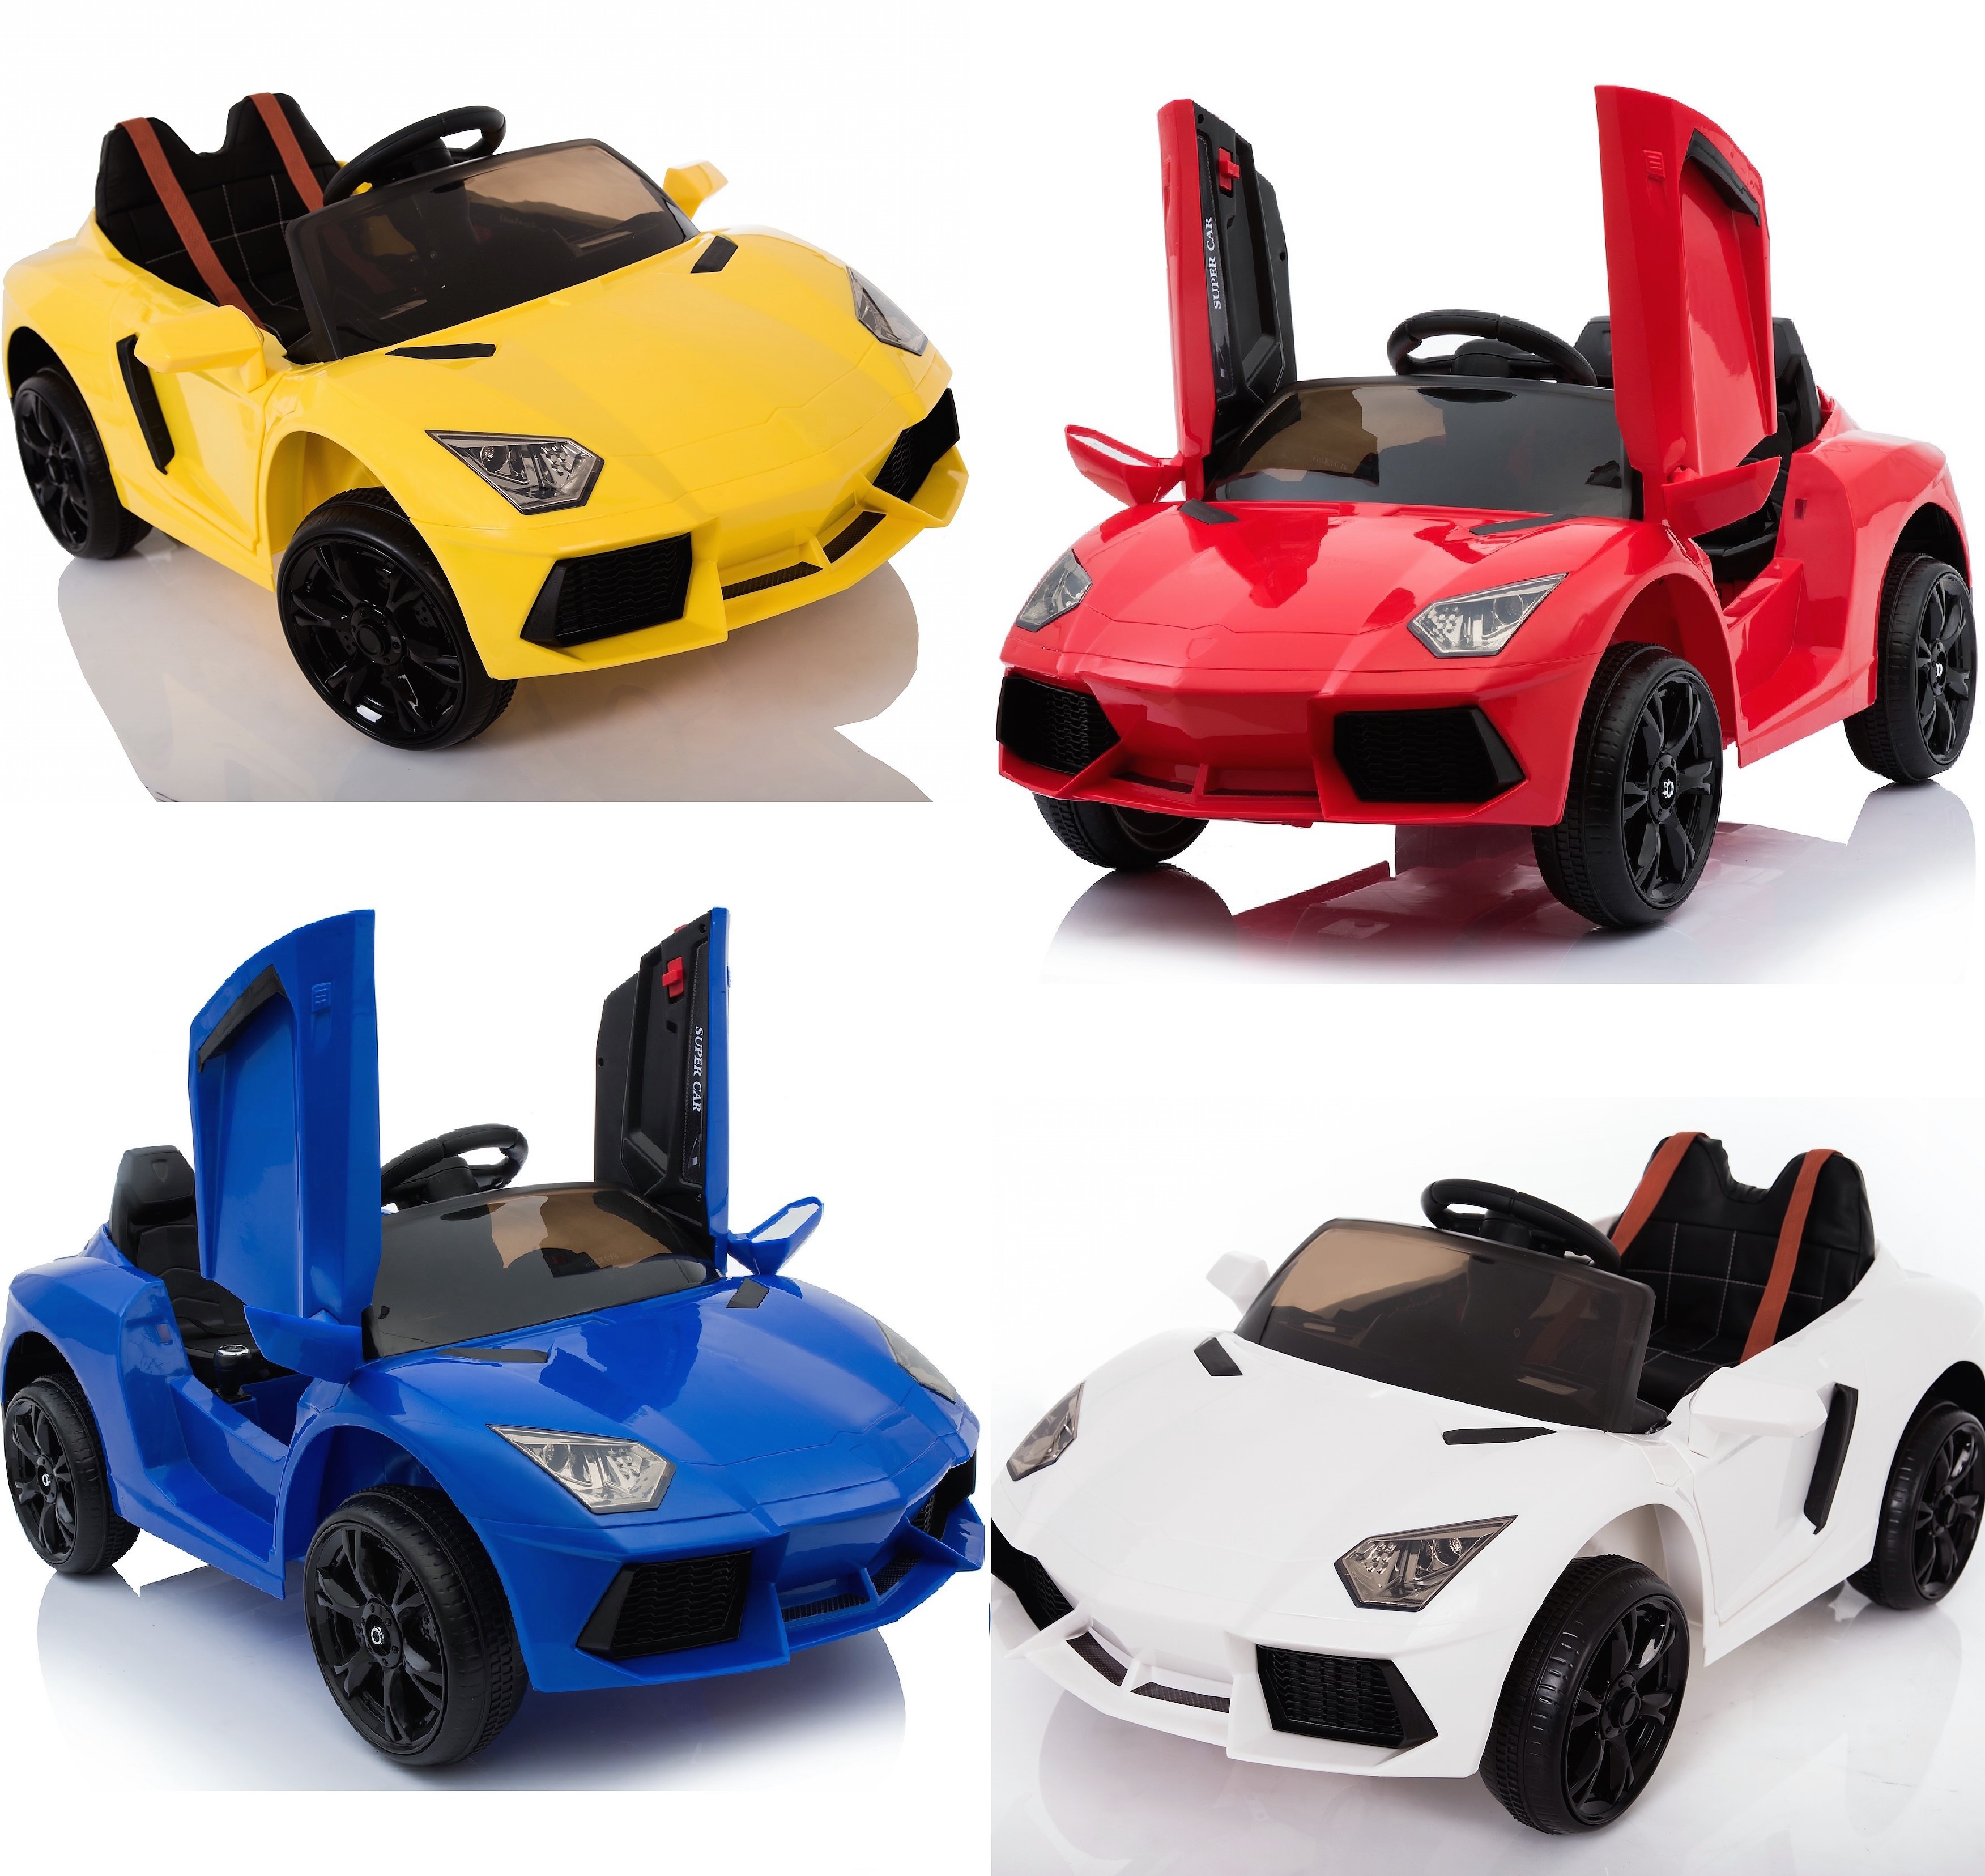 s cost exclusive in lamborghini tormo reviews circuit insurance concentrating valencia ricardo and at global driven over aventador previews has past driving days been few launch doors on spain its car but lambo the